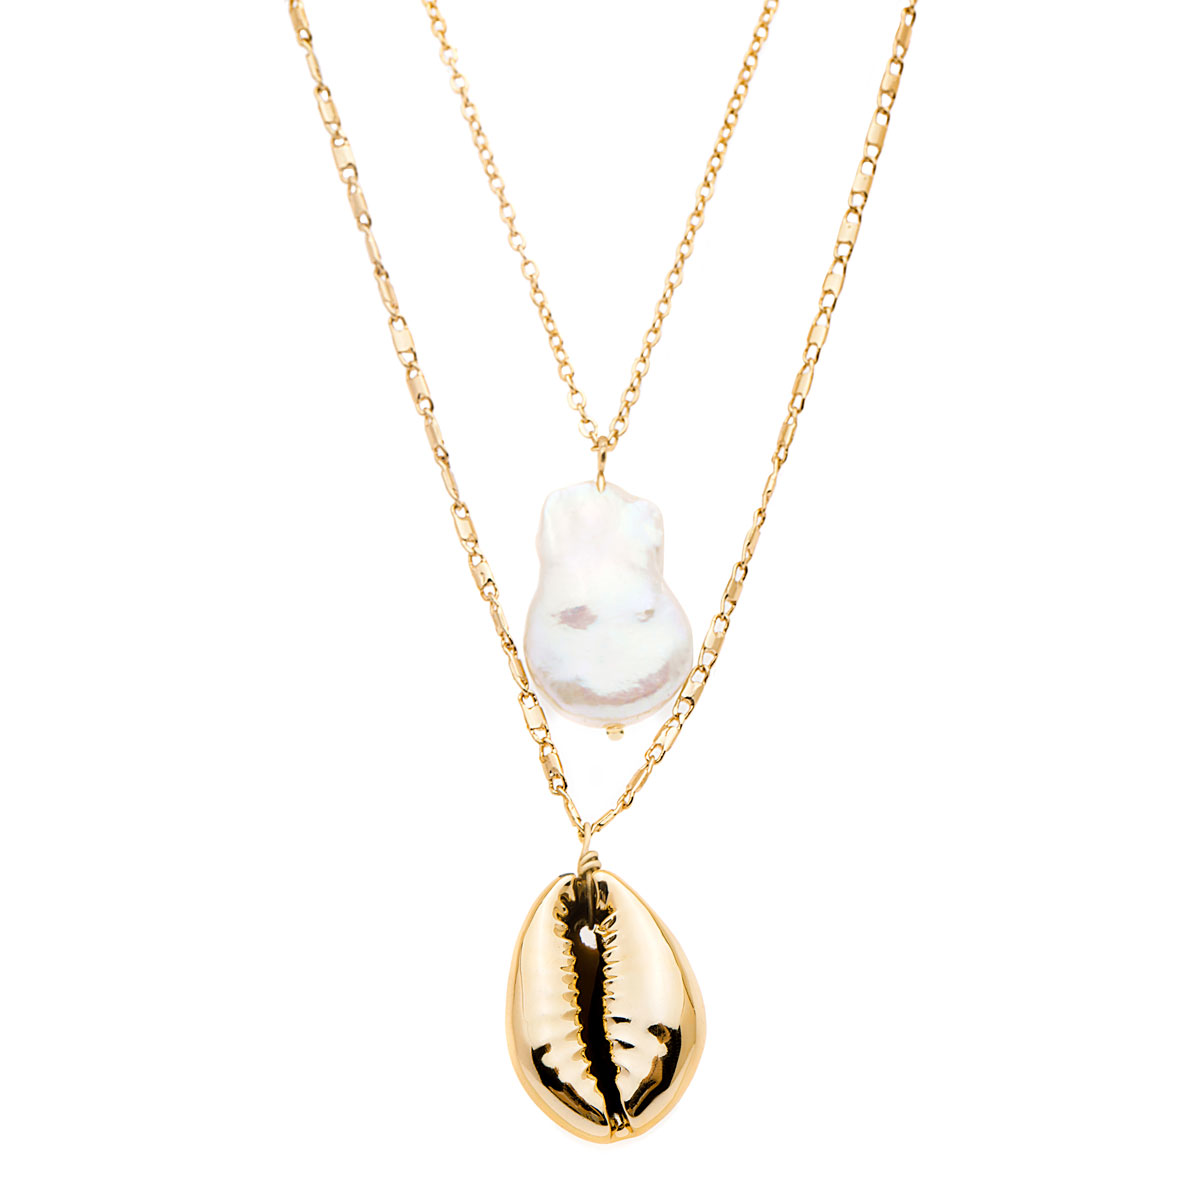 Amber Sceats Freshwater Pearl Molly Necklace